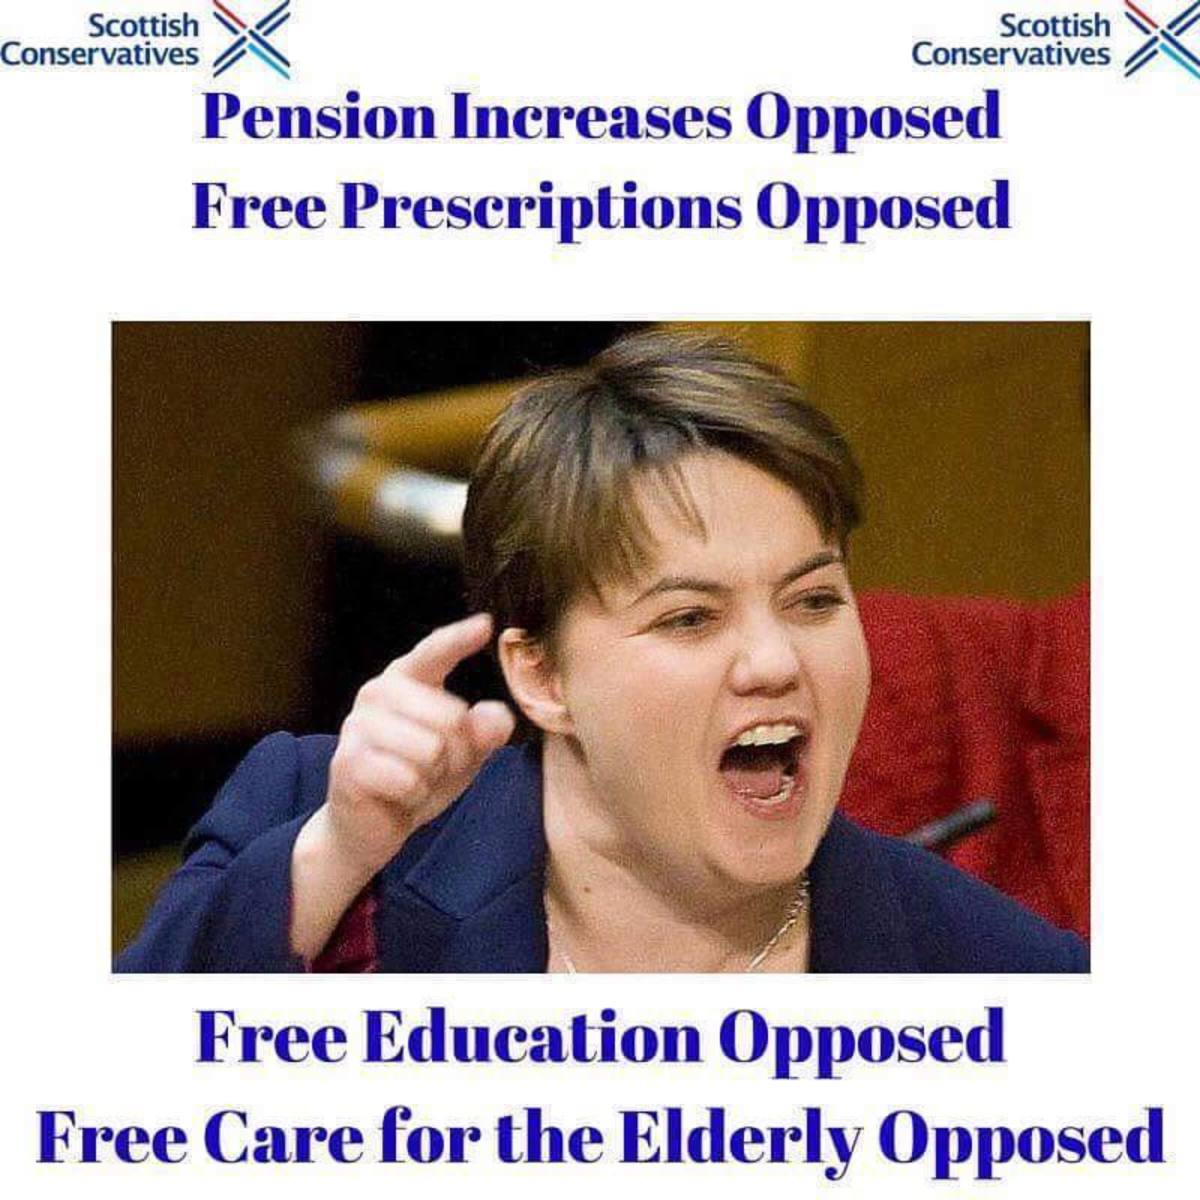 This is what the Unionist Opposition Oppose